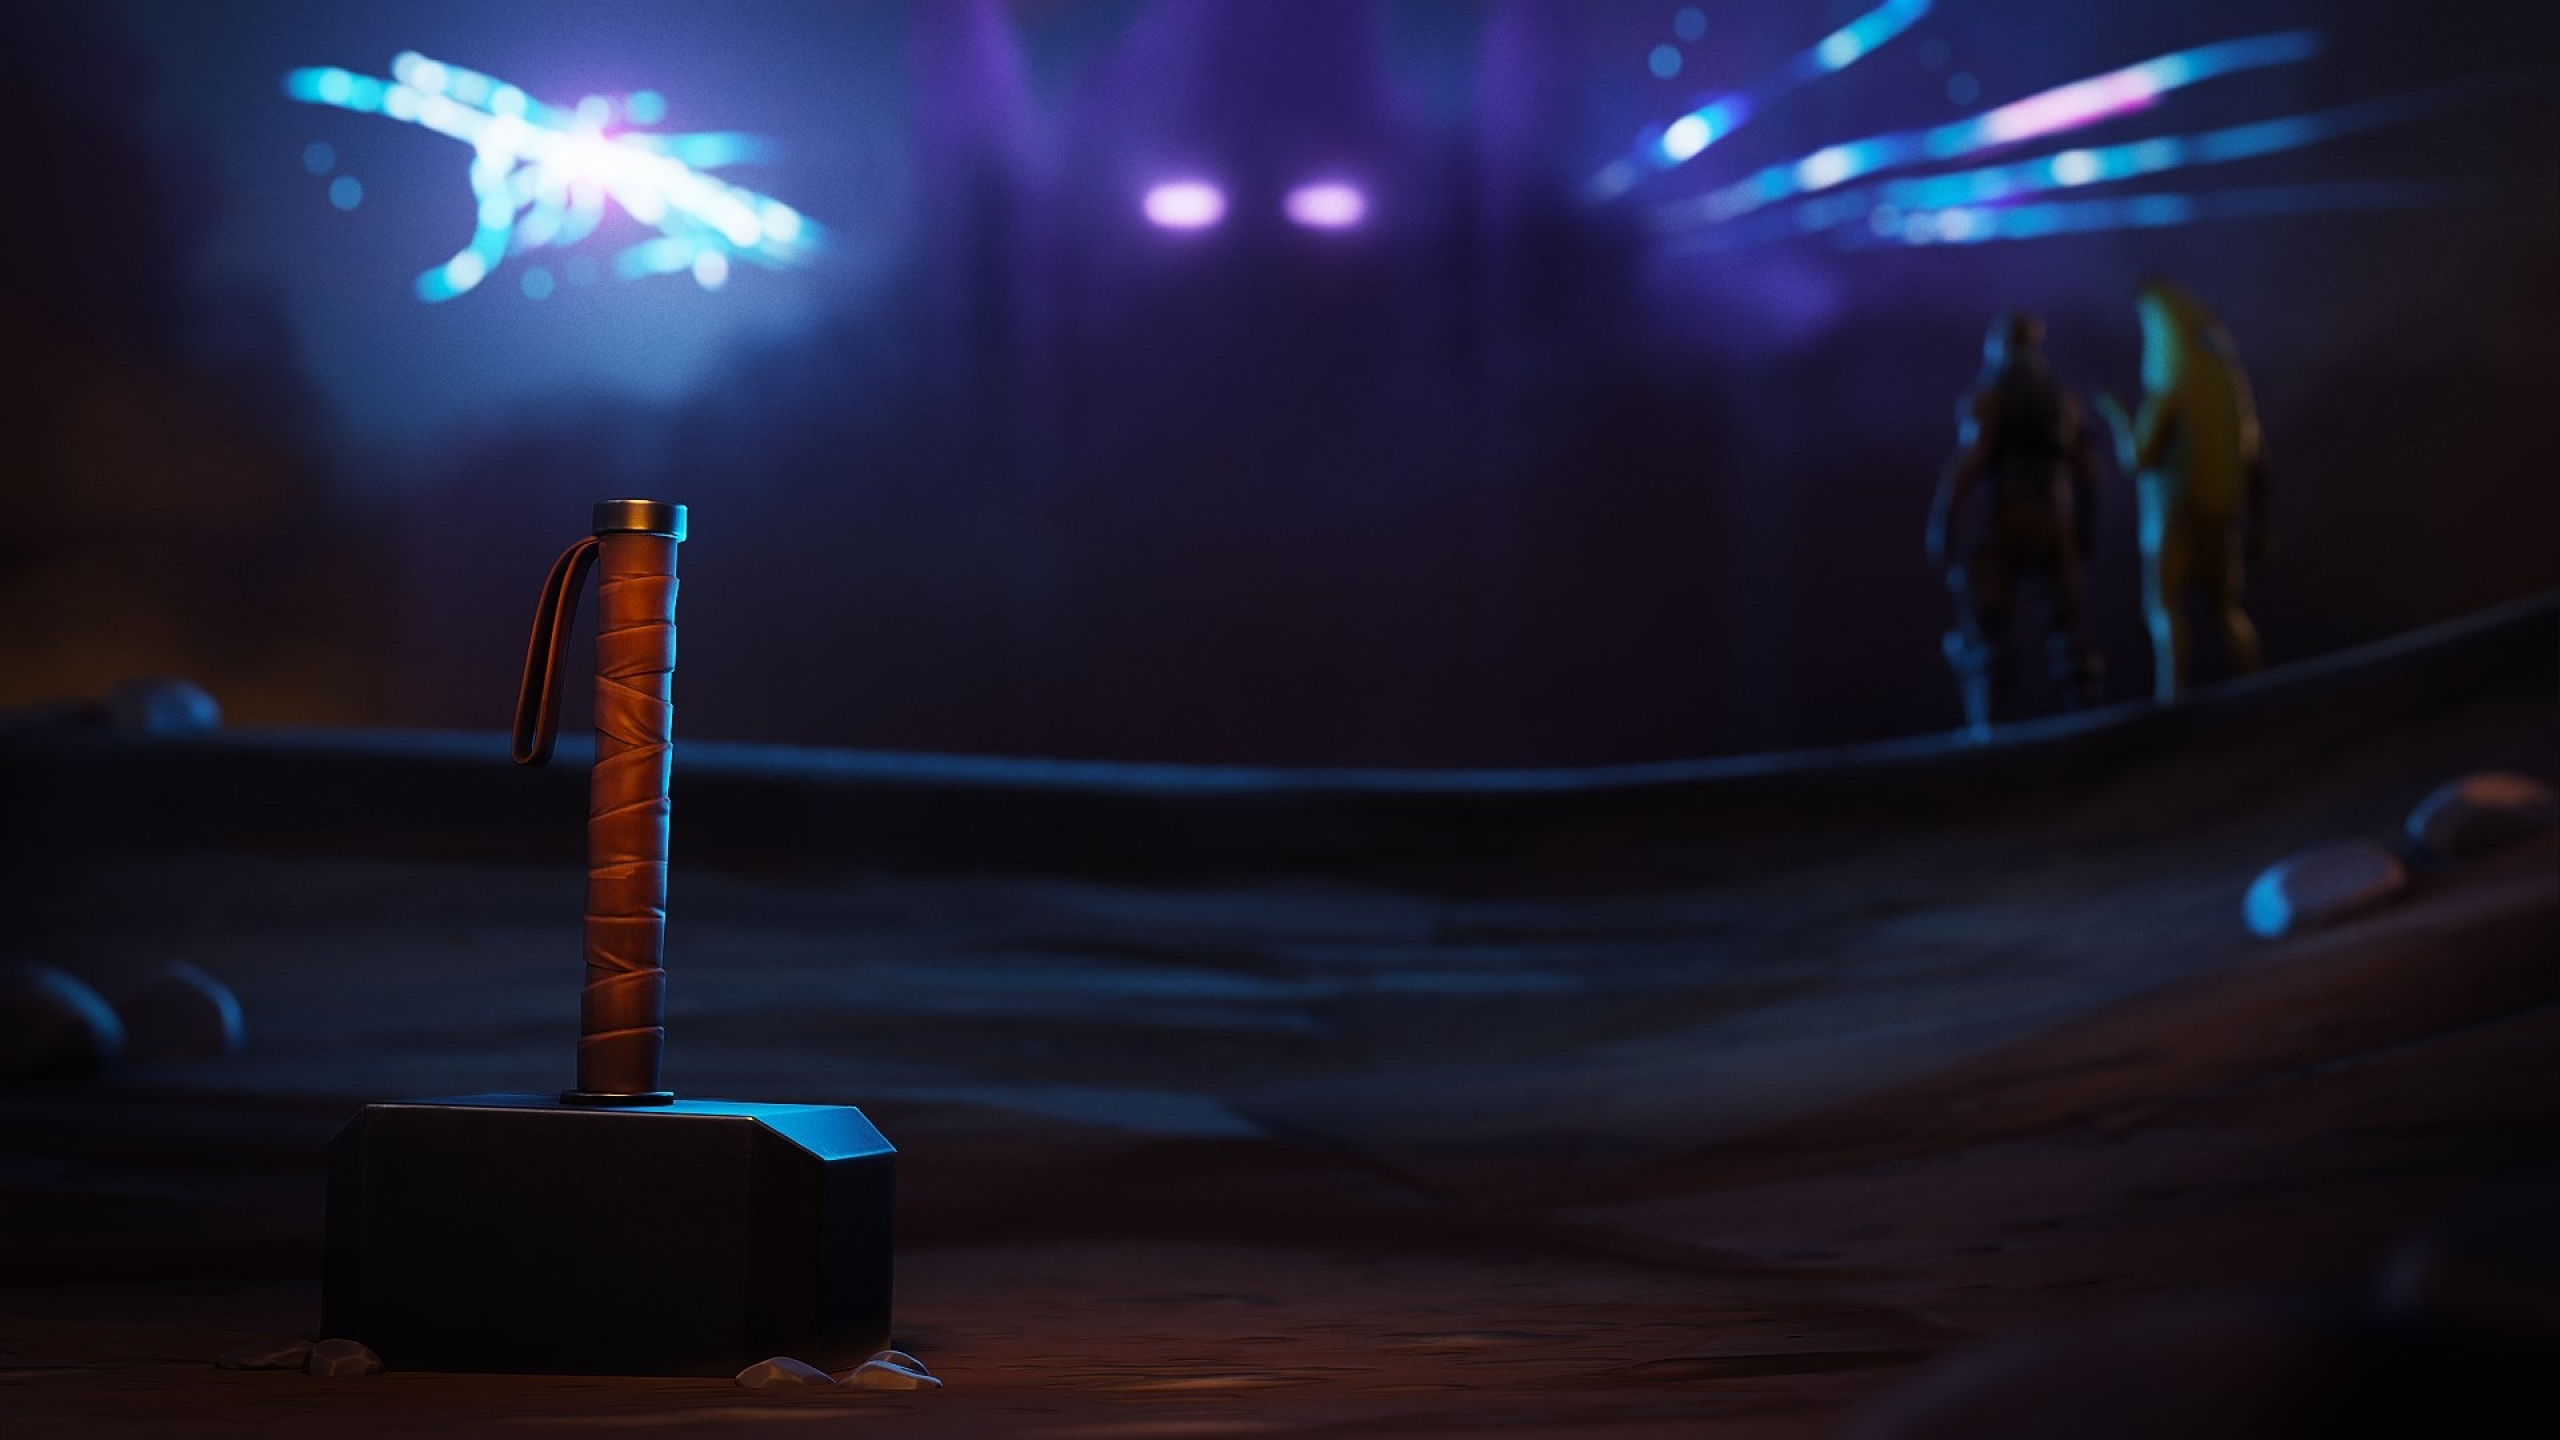 2560x1440 Thor Hammer Fortnite 1440p Resolution Wallpaper Hd Games 4k Wallpapers Images Photos And Background